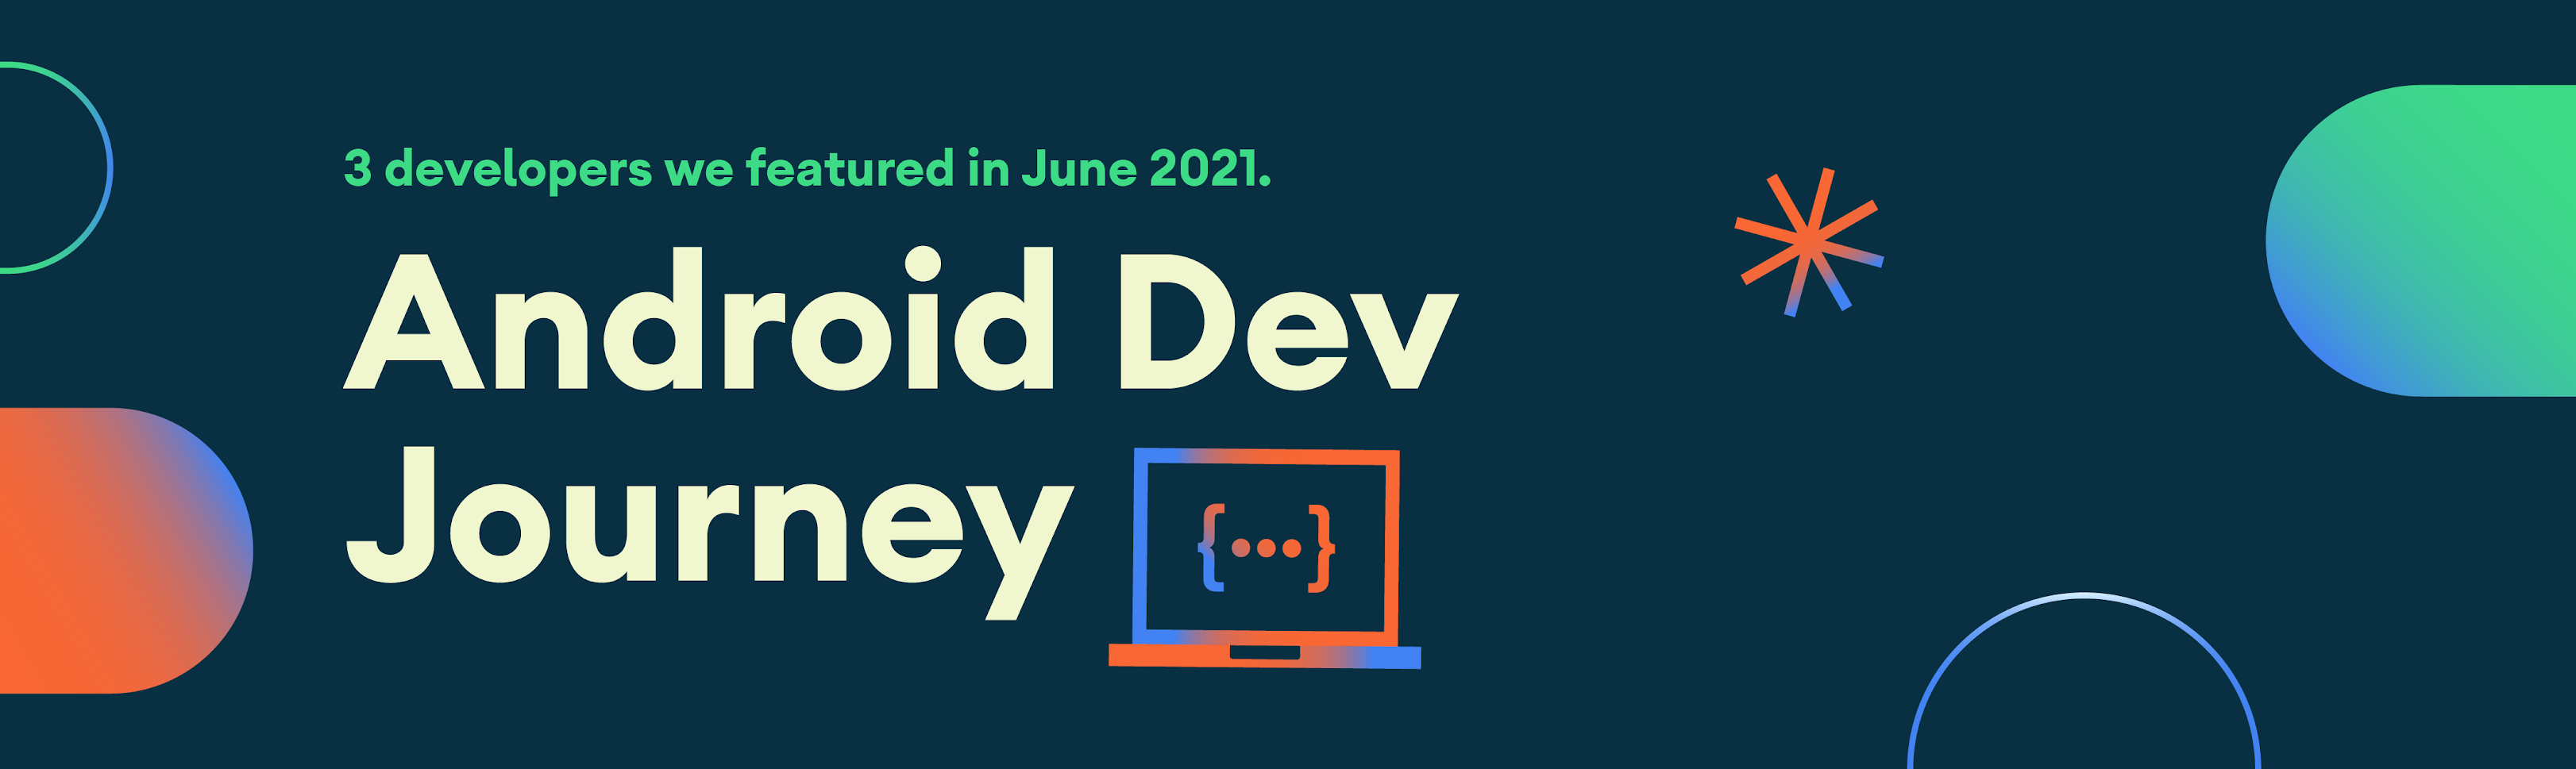 3 developers we featured in June 2021 Android Dev Journey